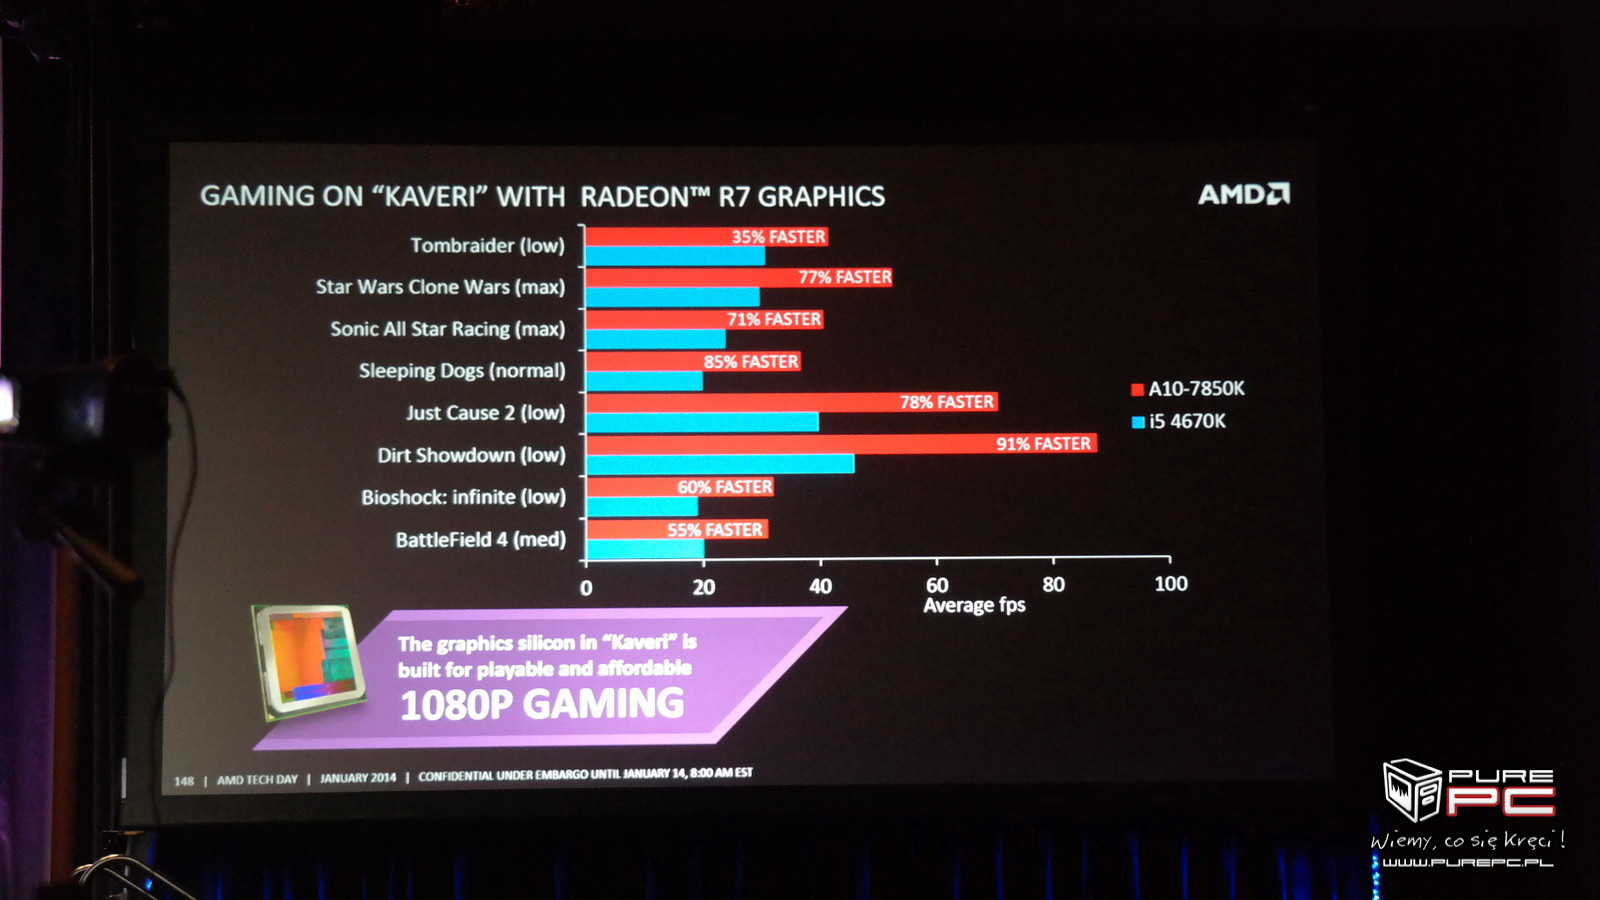 AMD Kaveri APU A10-7850K Gaming and General Performance Unveiled